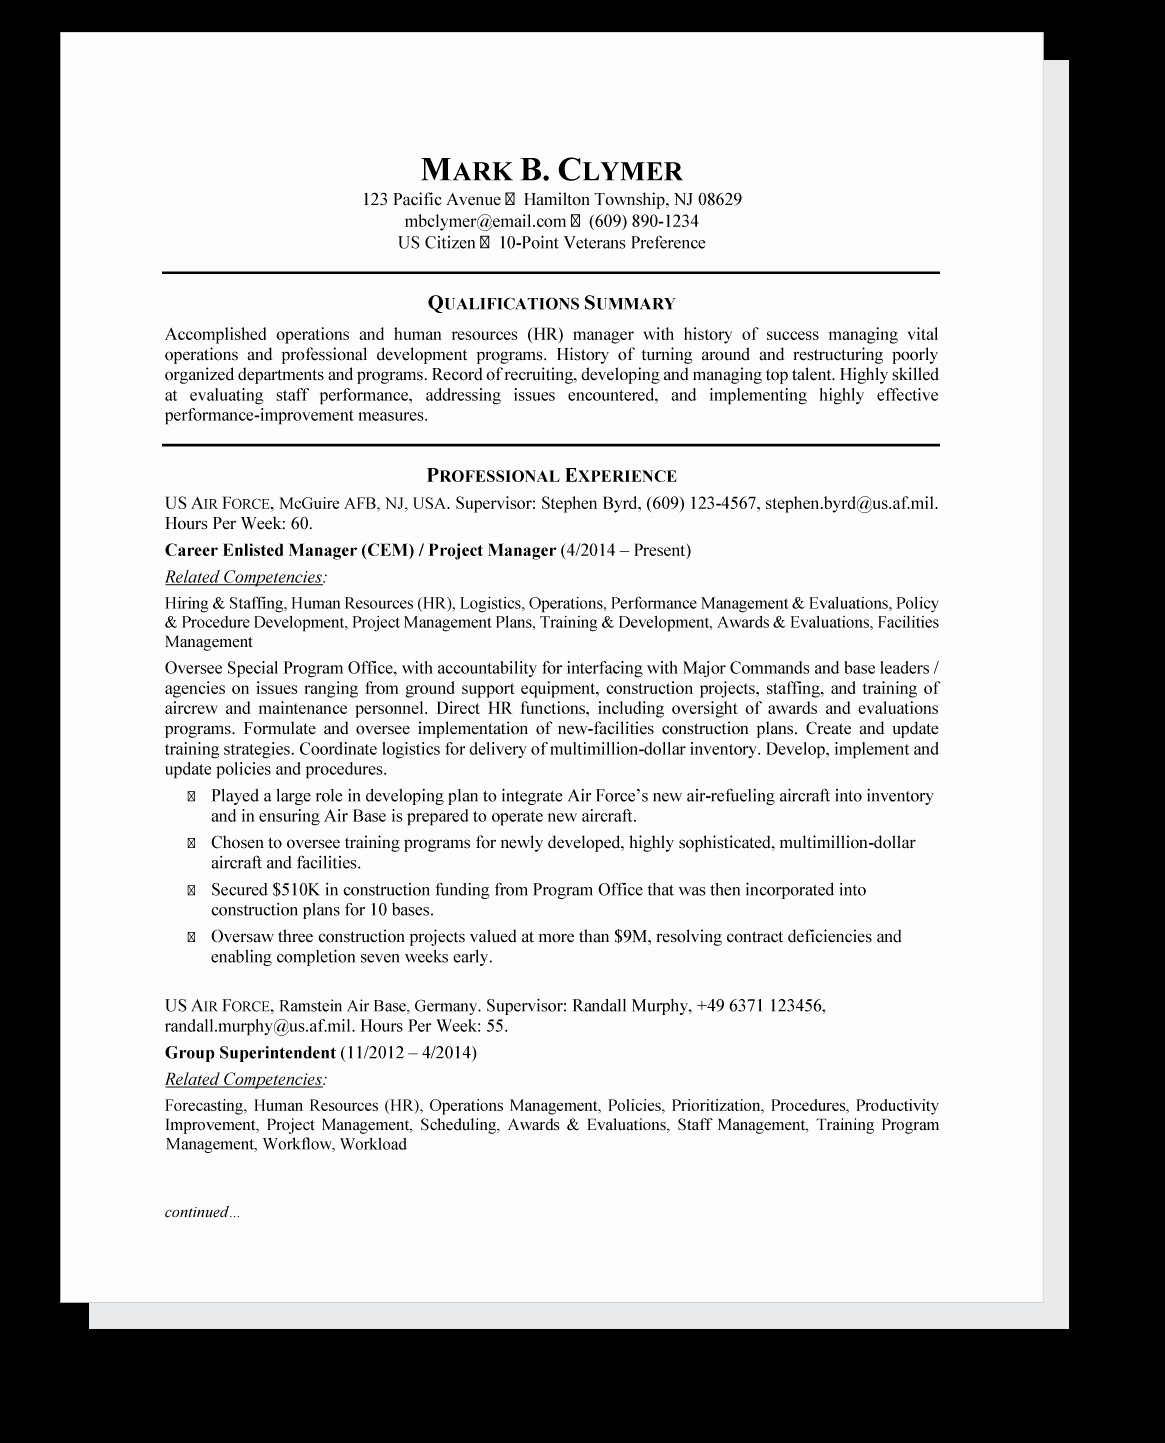 Sample Resumes for Federal Jobs Fresh top Resume Tips for Writing A Federal Resume